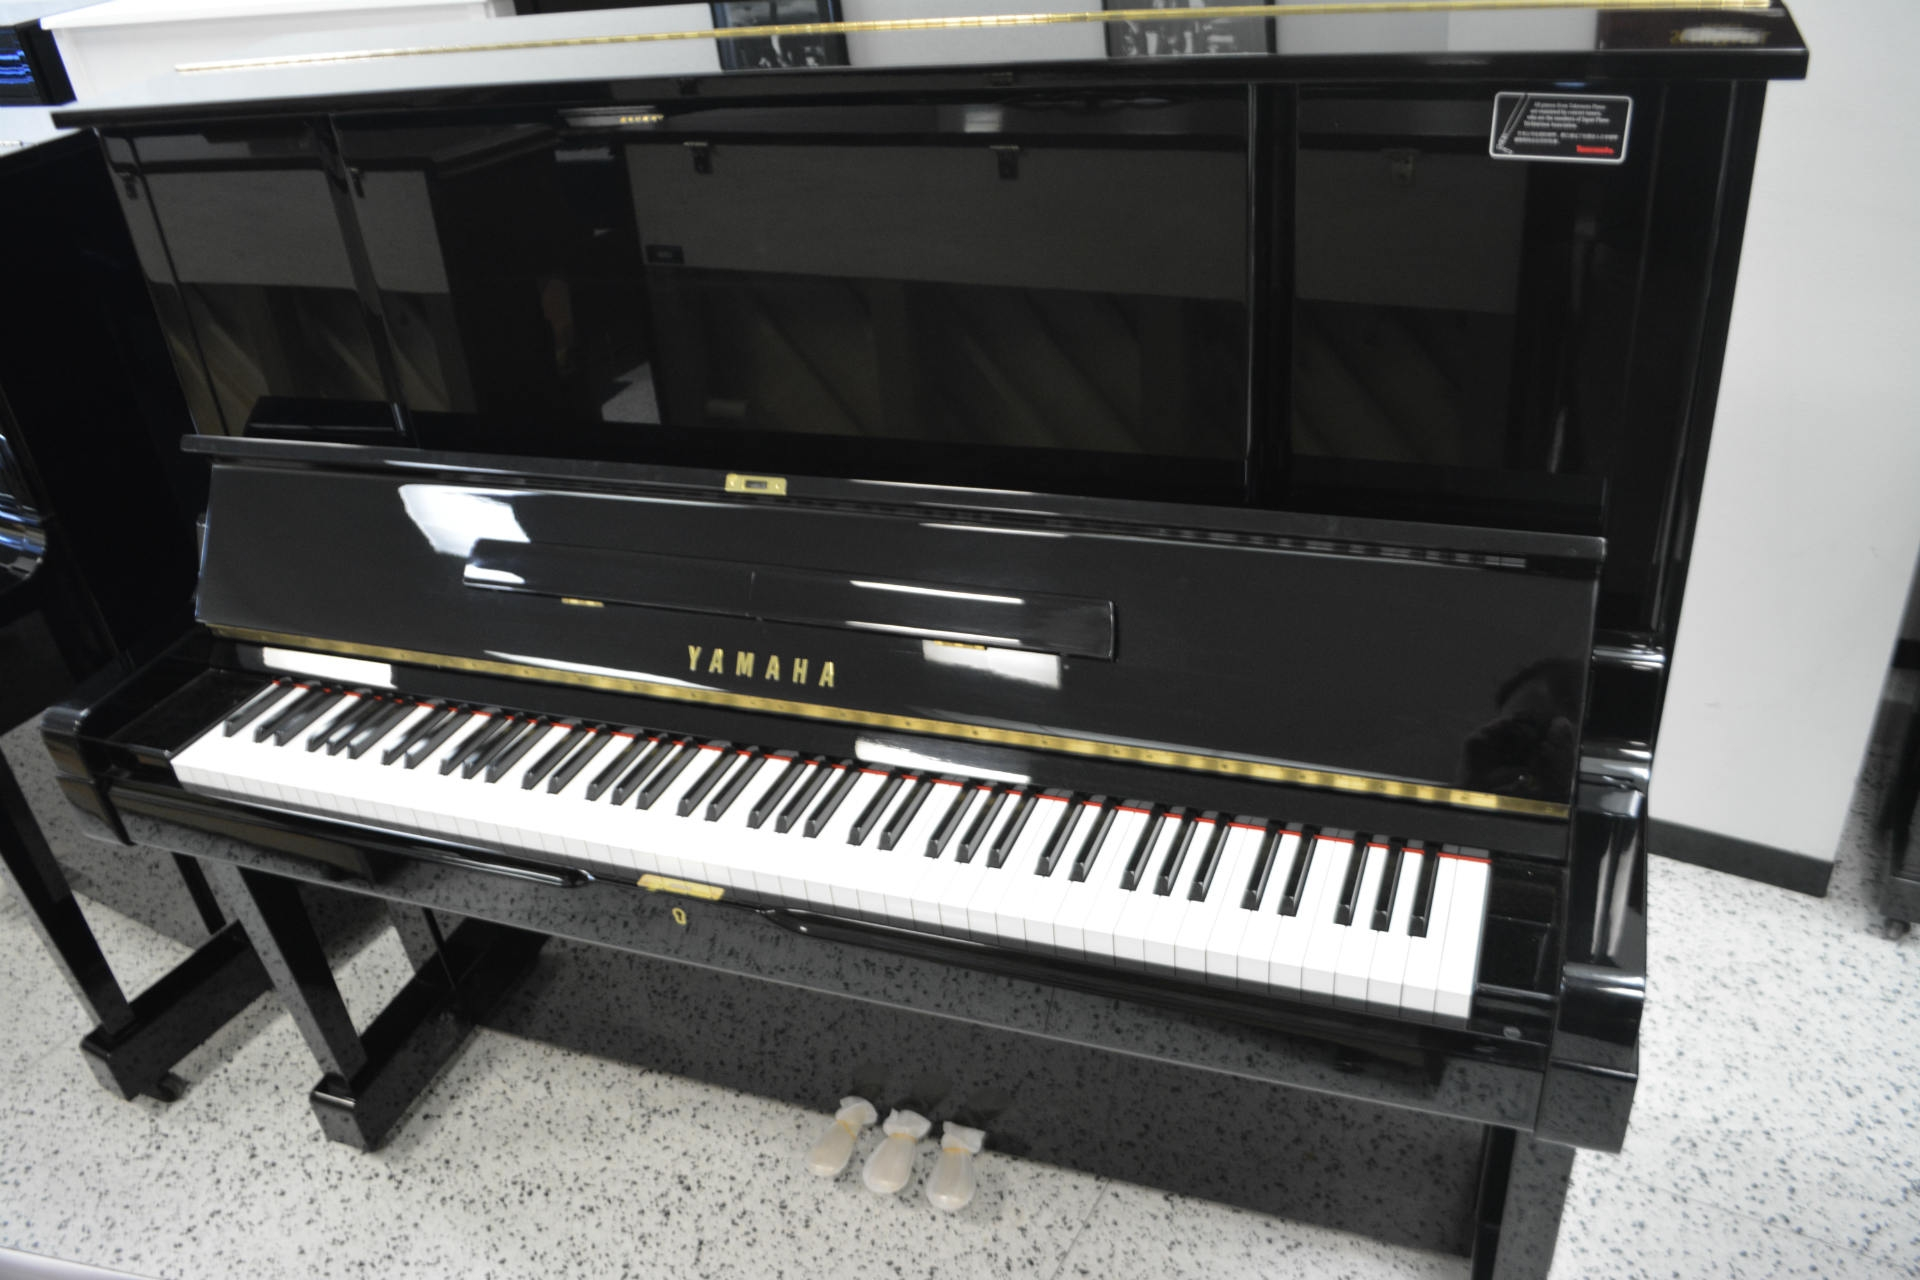 Yamaha UX-1 Professional Upright Piano (used)